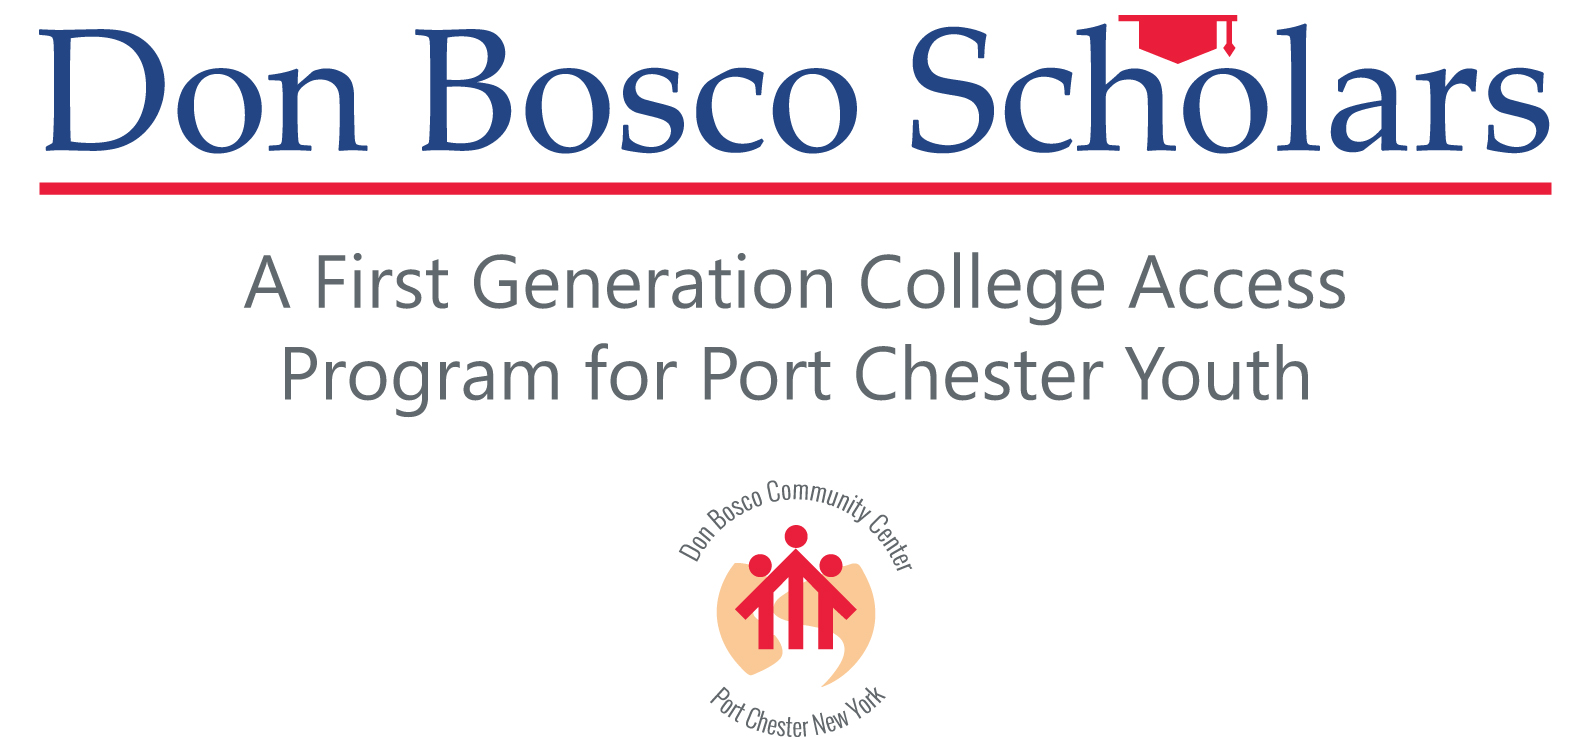 Don Bosco Scholars: College Access for Port Chester Youth Logo